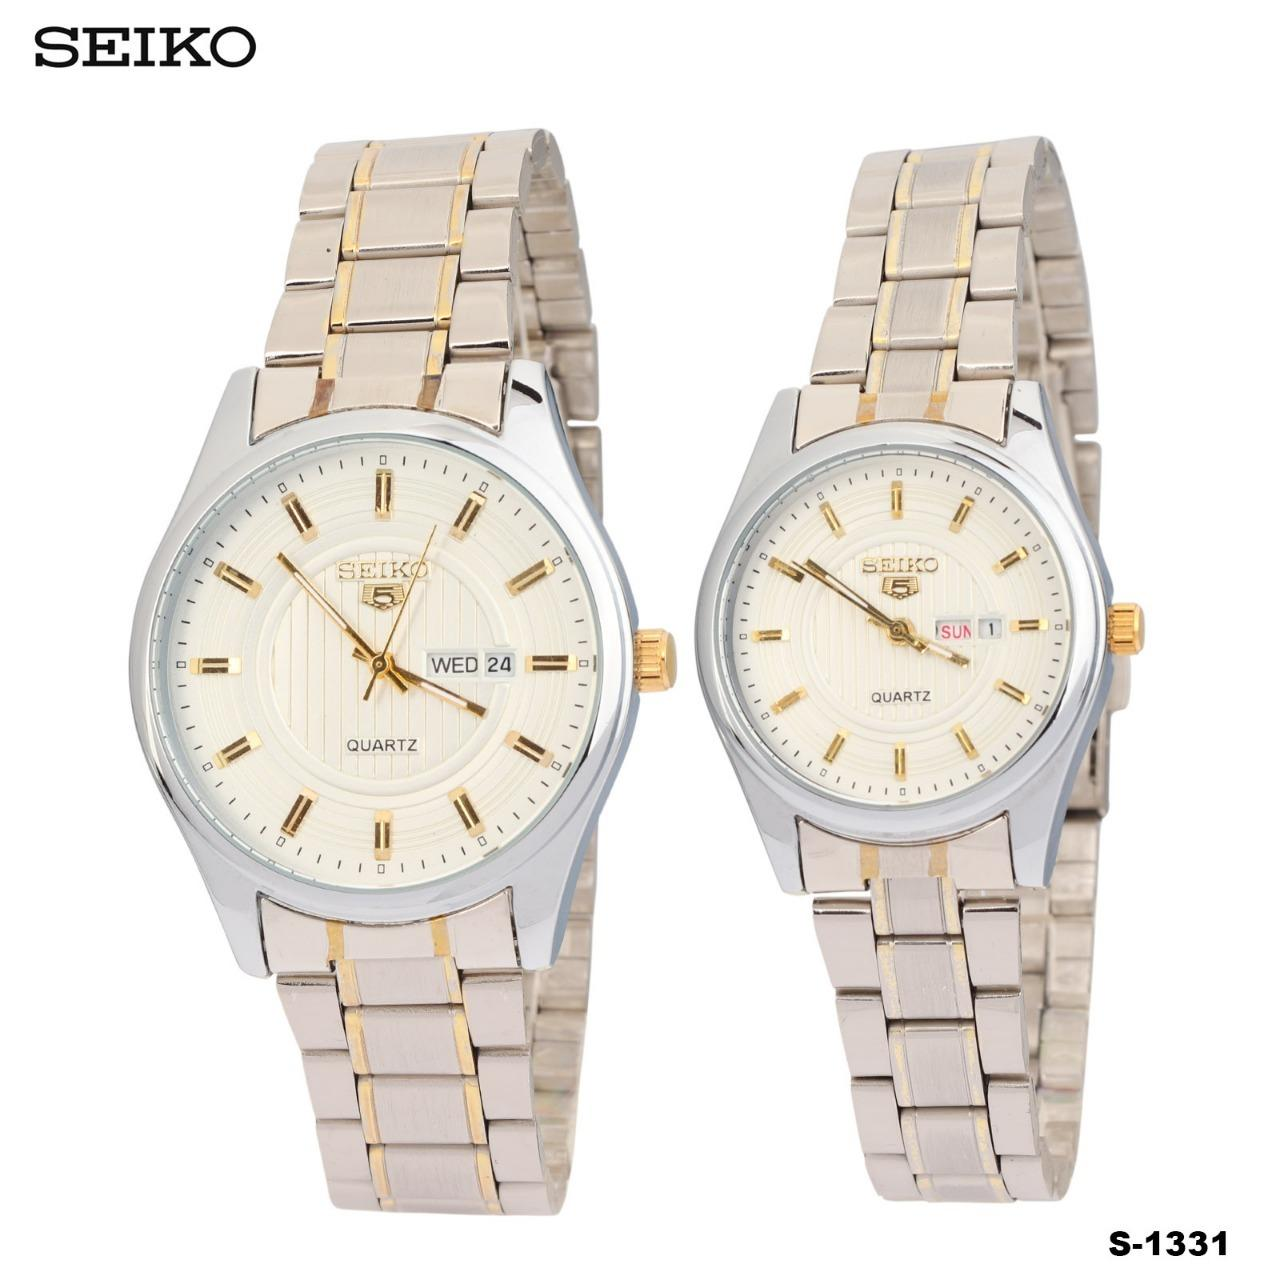 Buy Sell Cheapest Seiko Quartz Snd799p1 Best Quality Product Deals Classic Sgeh51p1 Sapphire Crystal Stainless Steel Bracelet Couple Jam Tangan Pria Dan Wanita Silver 965s